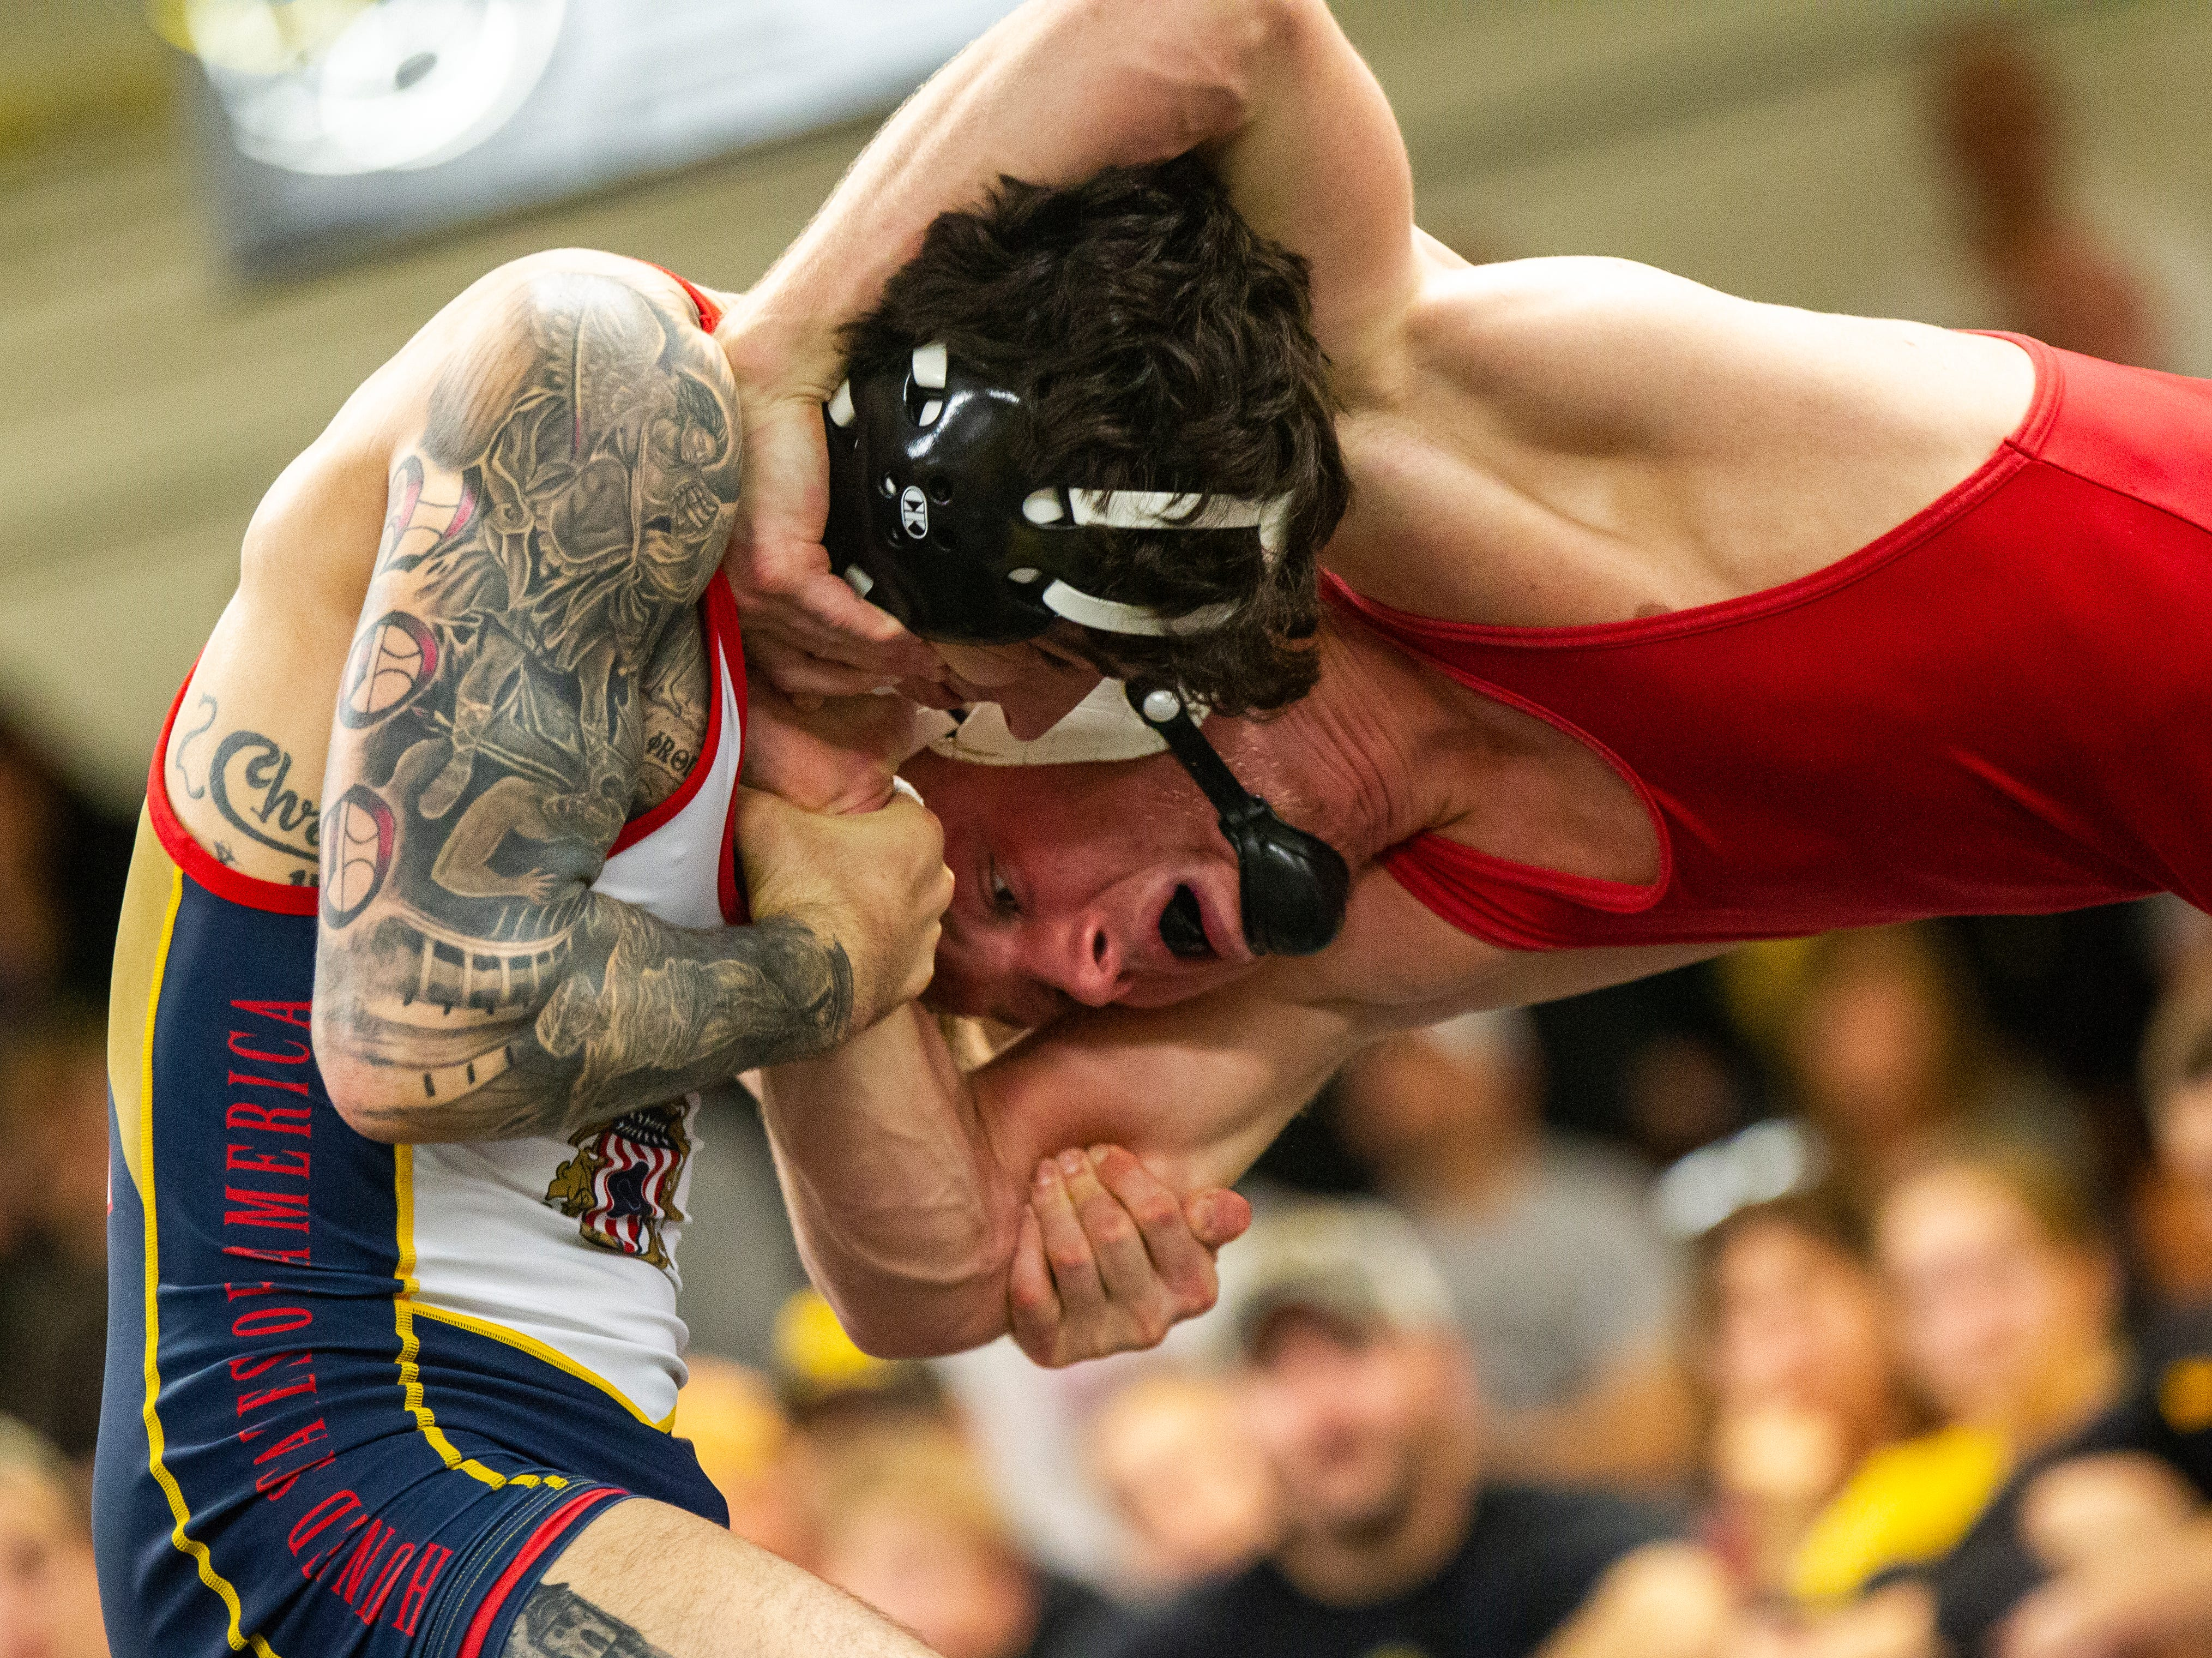 Iowa's Vince Turk (left) and Max Murin wrestle at 141 during the wrestle-offs on Friday, Nov. 2, 2018, inside the Dan Gable Wrestling Complex at Carver-Hawkeye Arena in Iowa City.